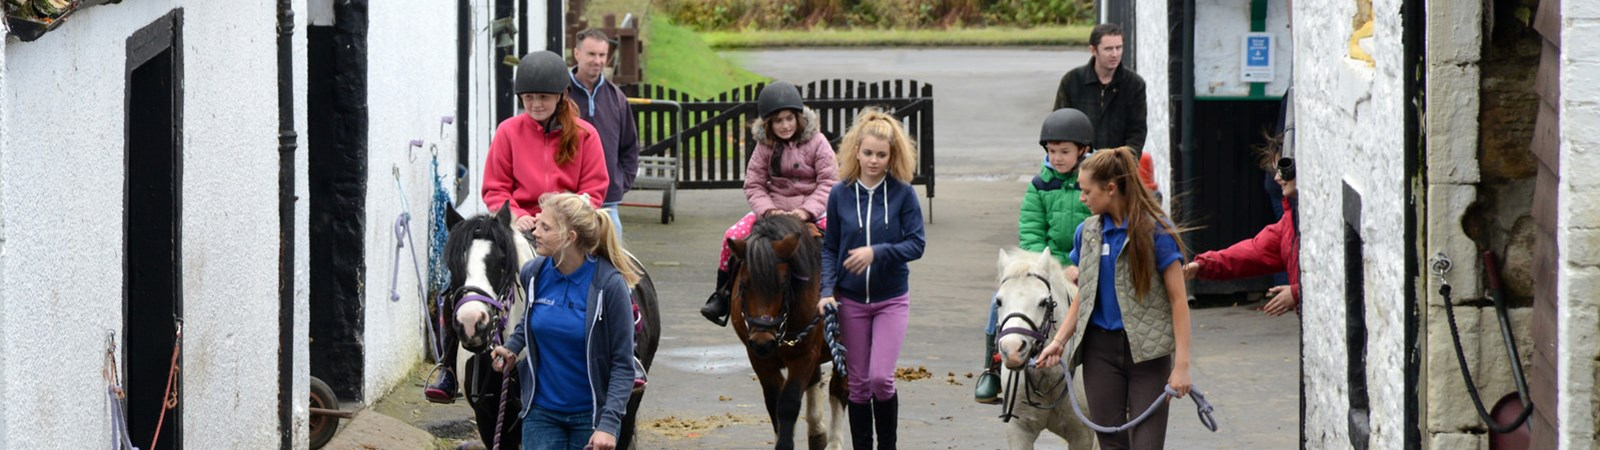 Horseriding in the Falkirk Area, Things to do In Falkirk